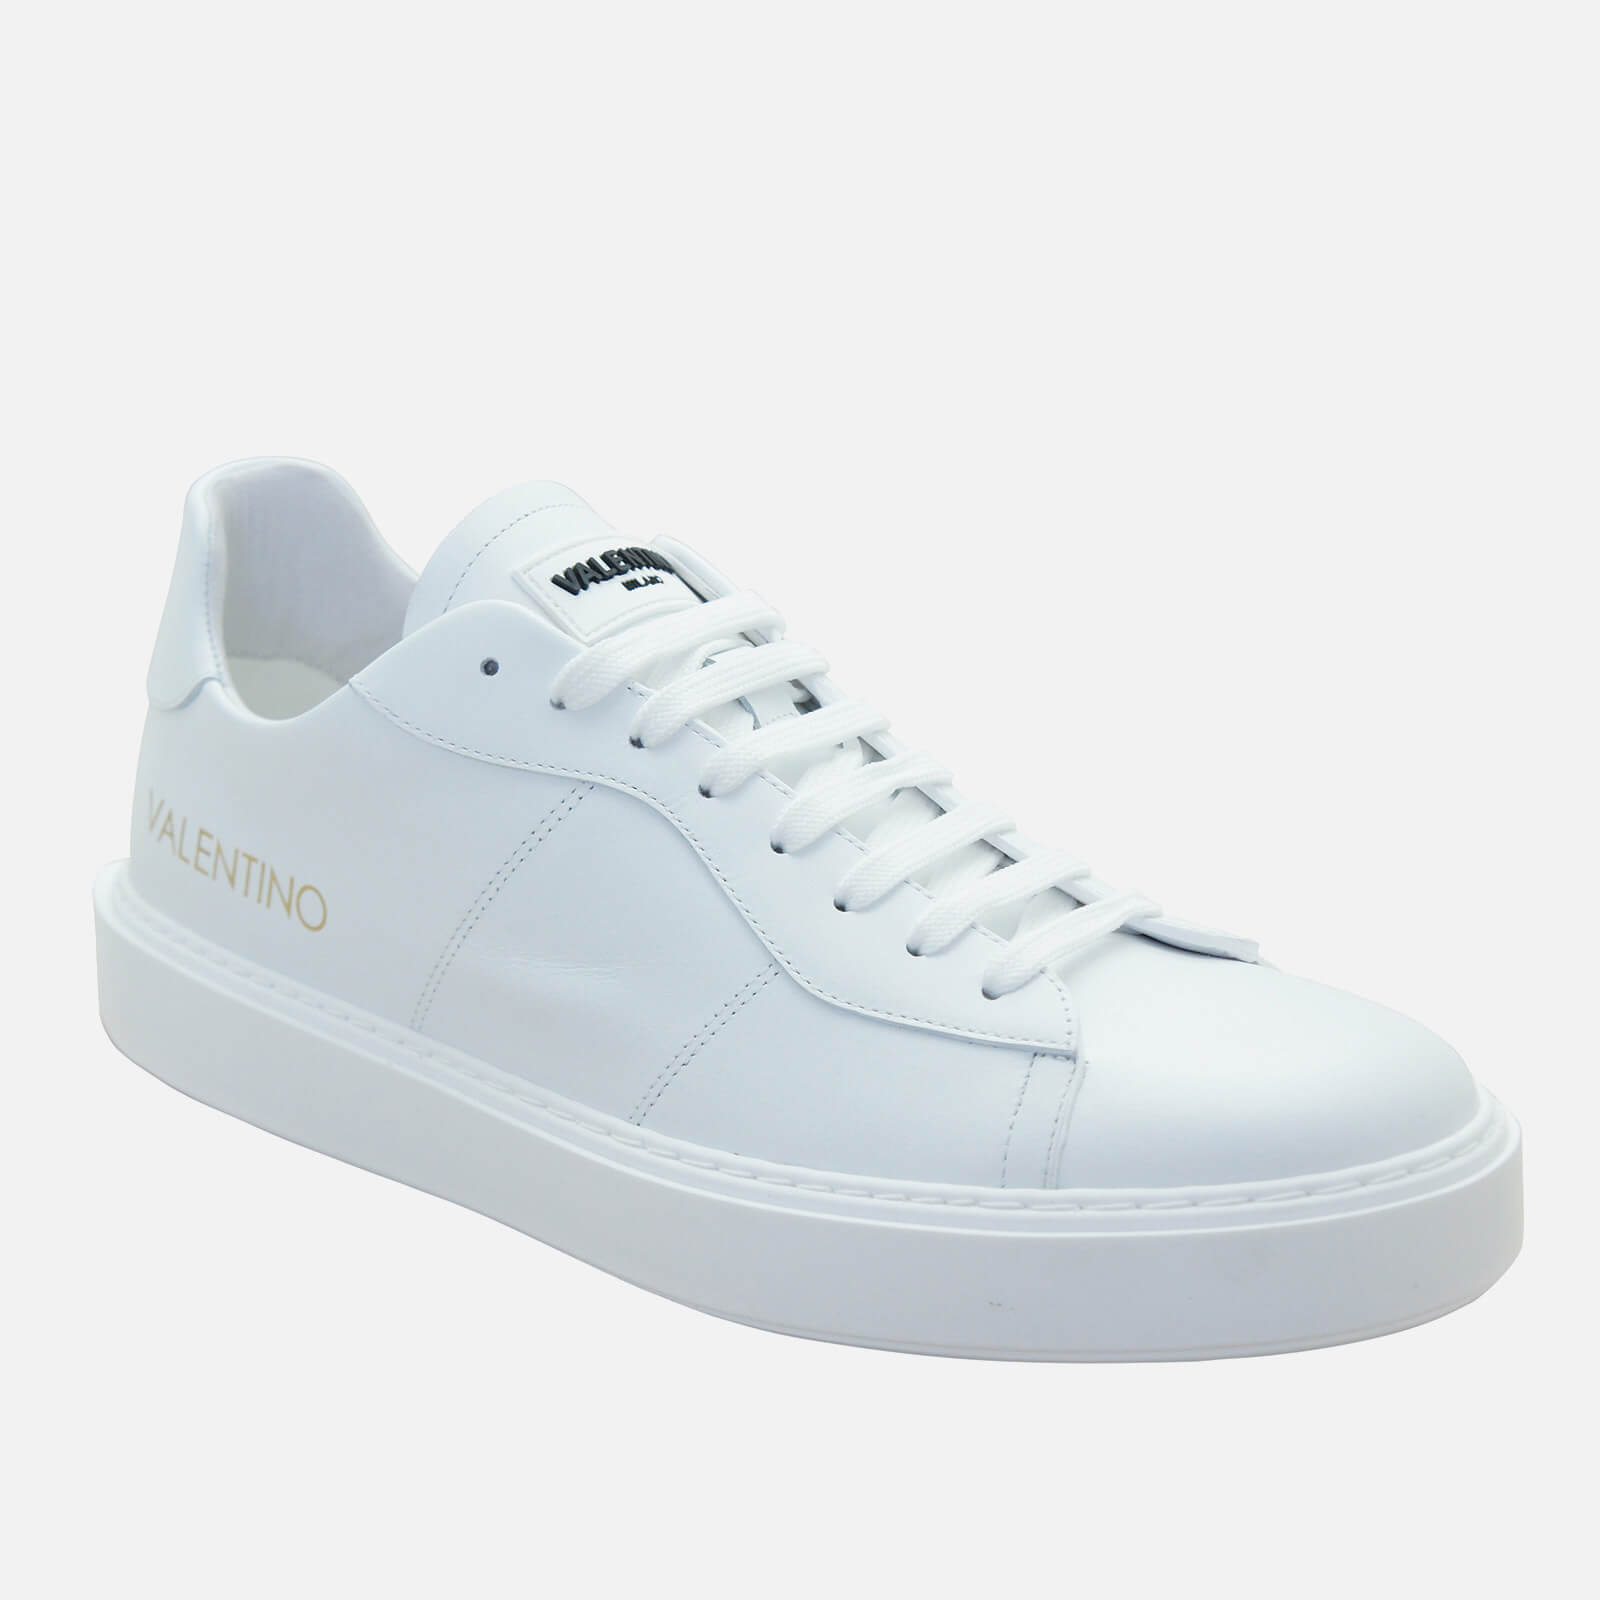 Valentino Shoes Men's Leather Chunky Trainers - White/Black - UK 7